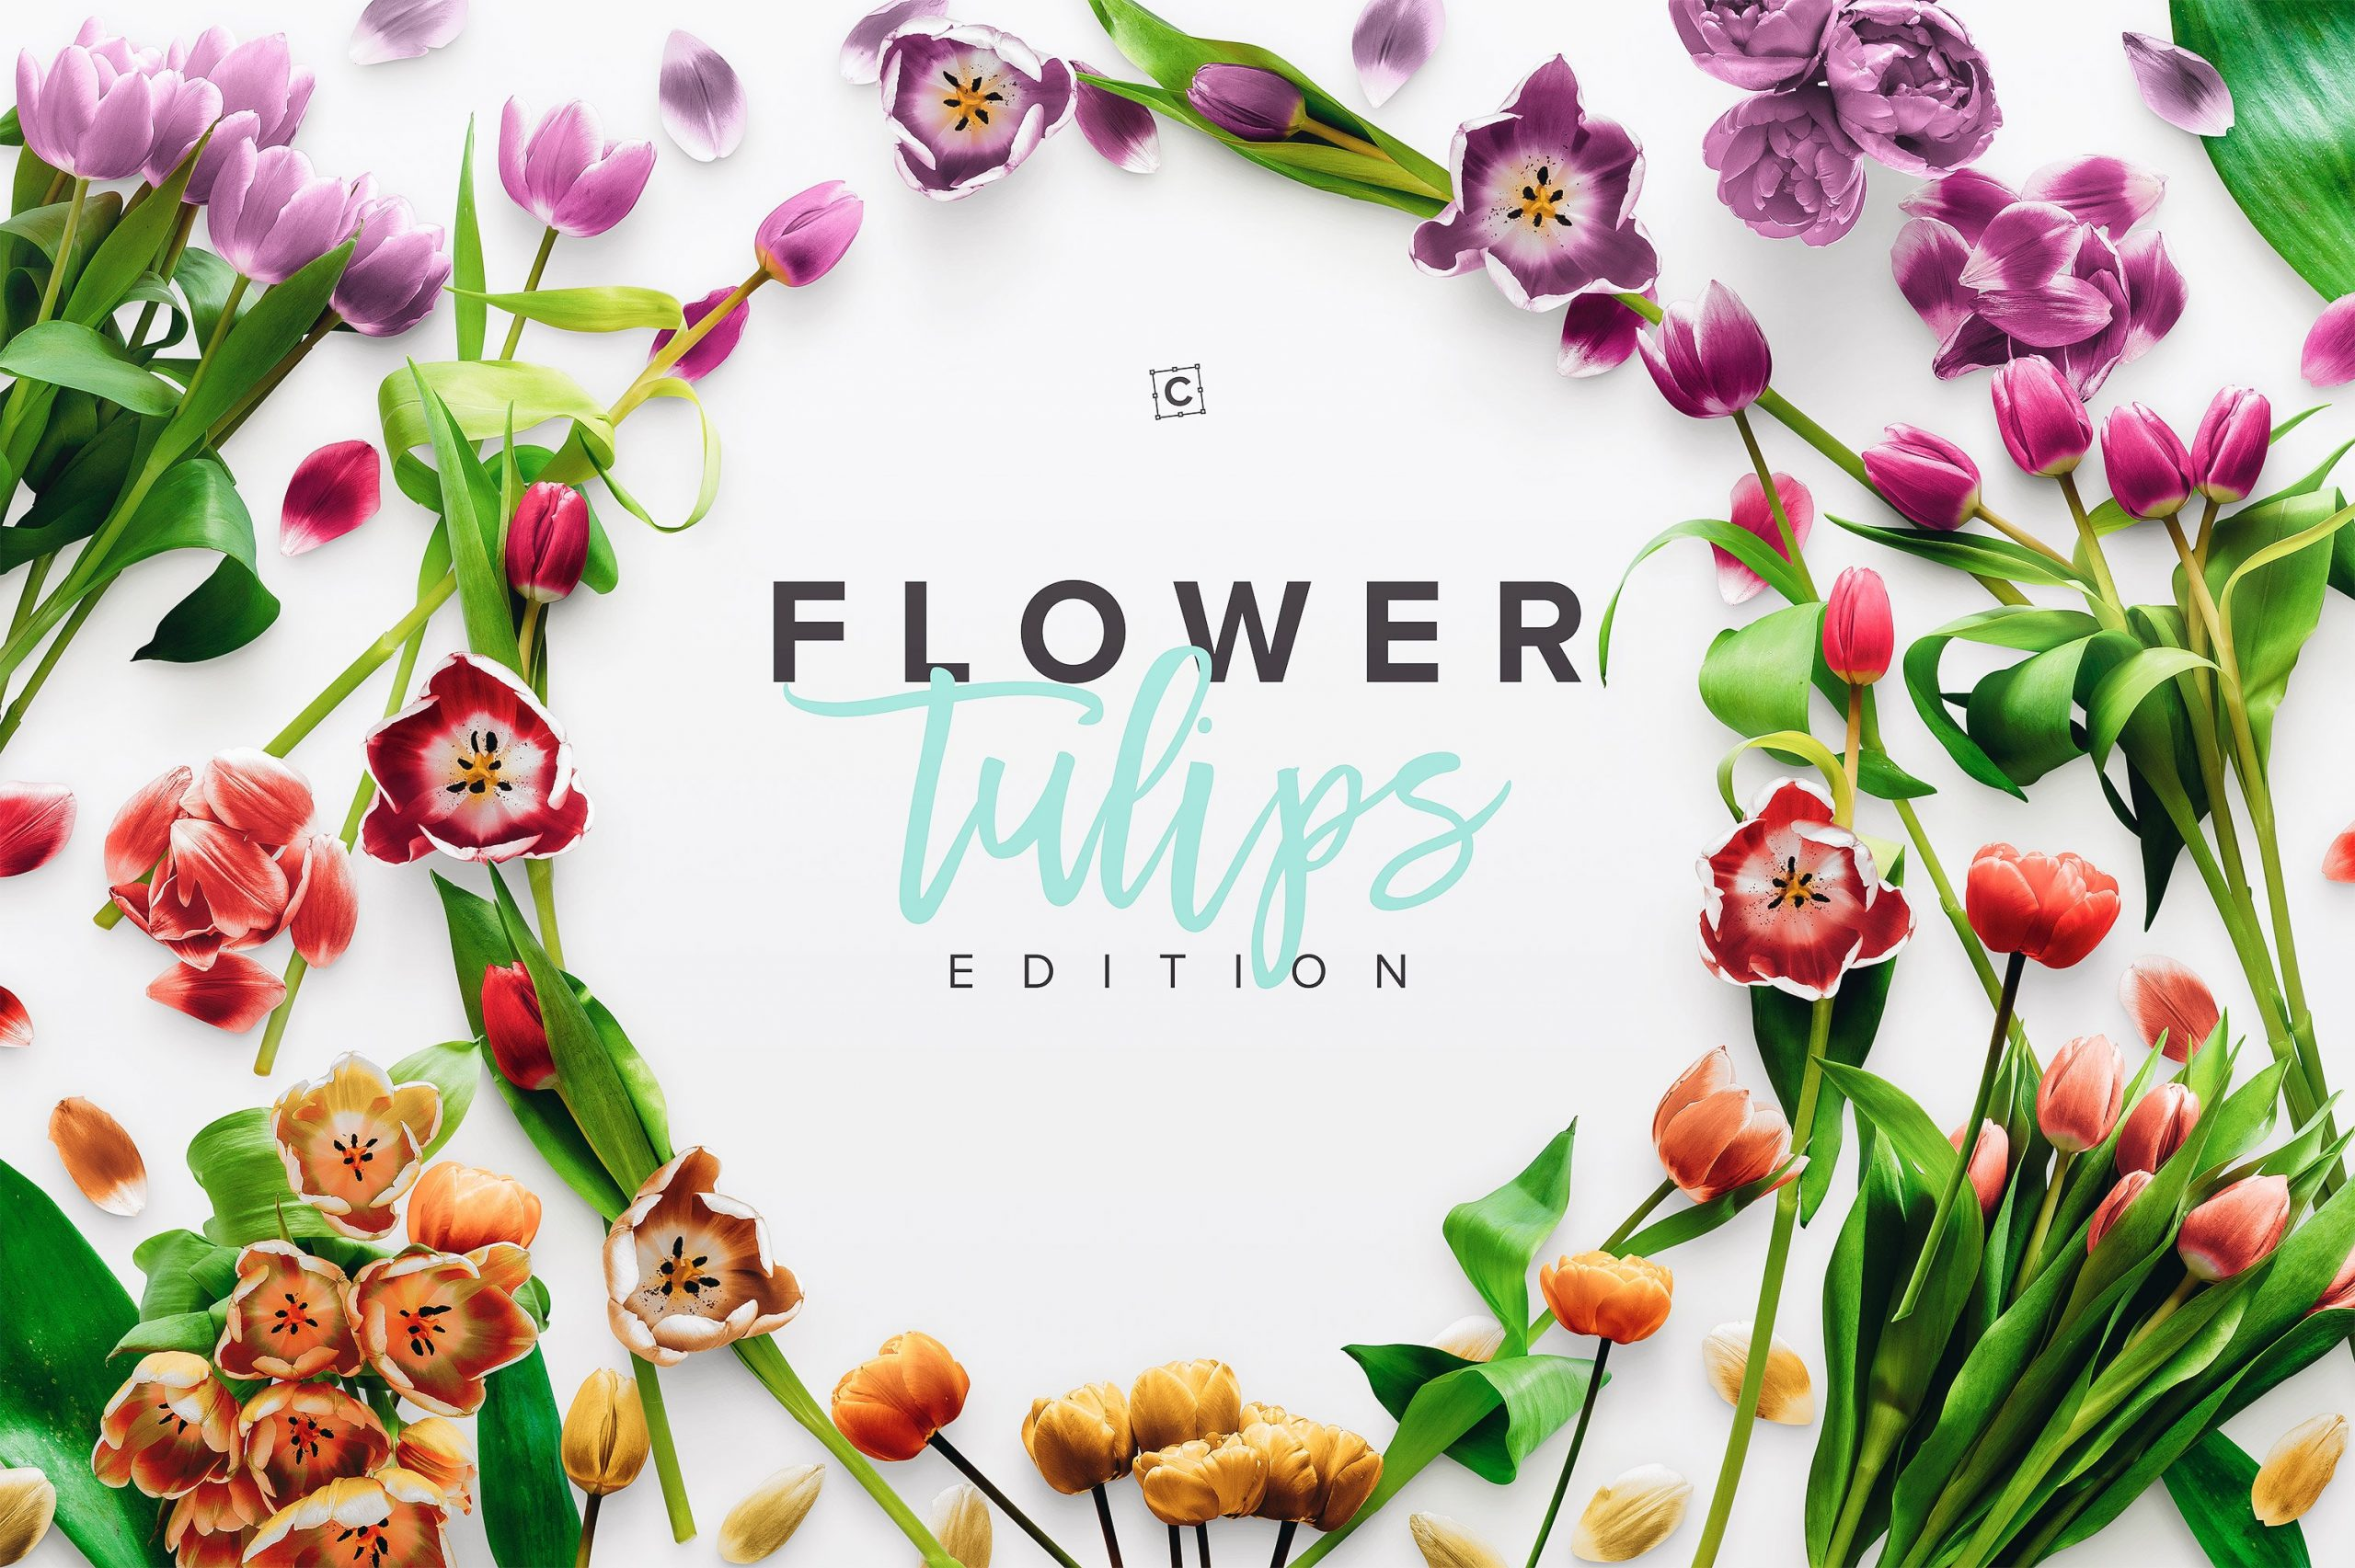 custom scene flower tulips edition cover